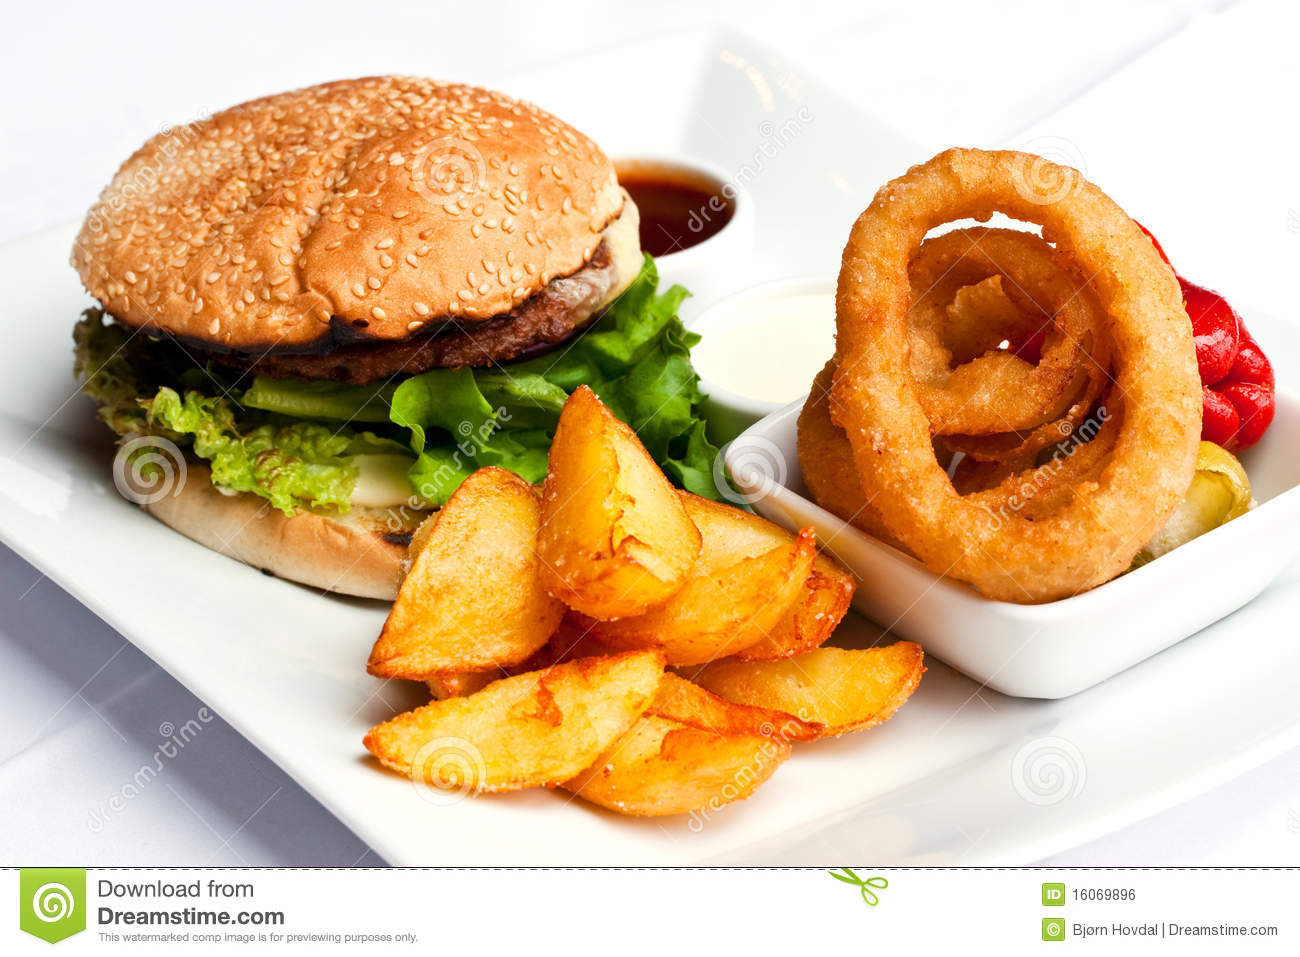 Hamburger Meal Royalty Free Stock Image  Image: 16069896